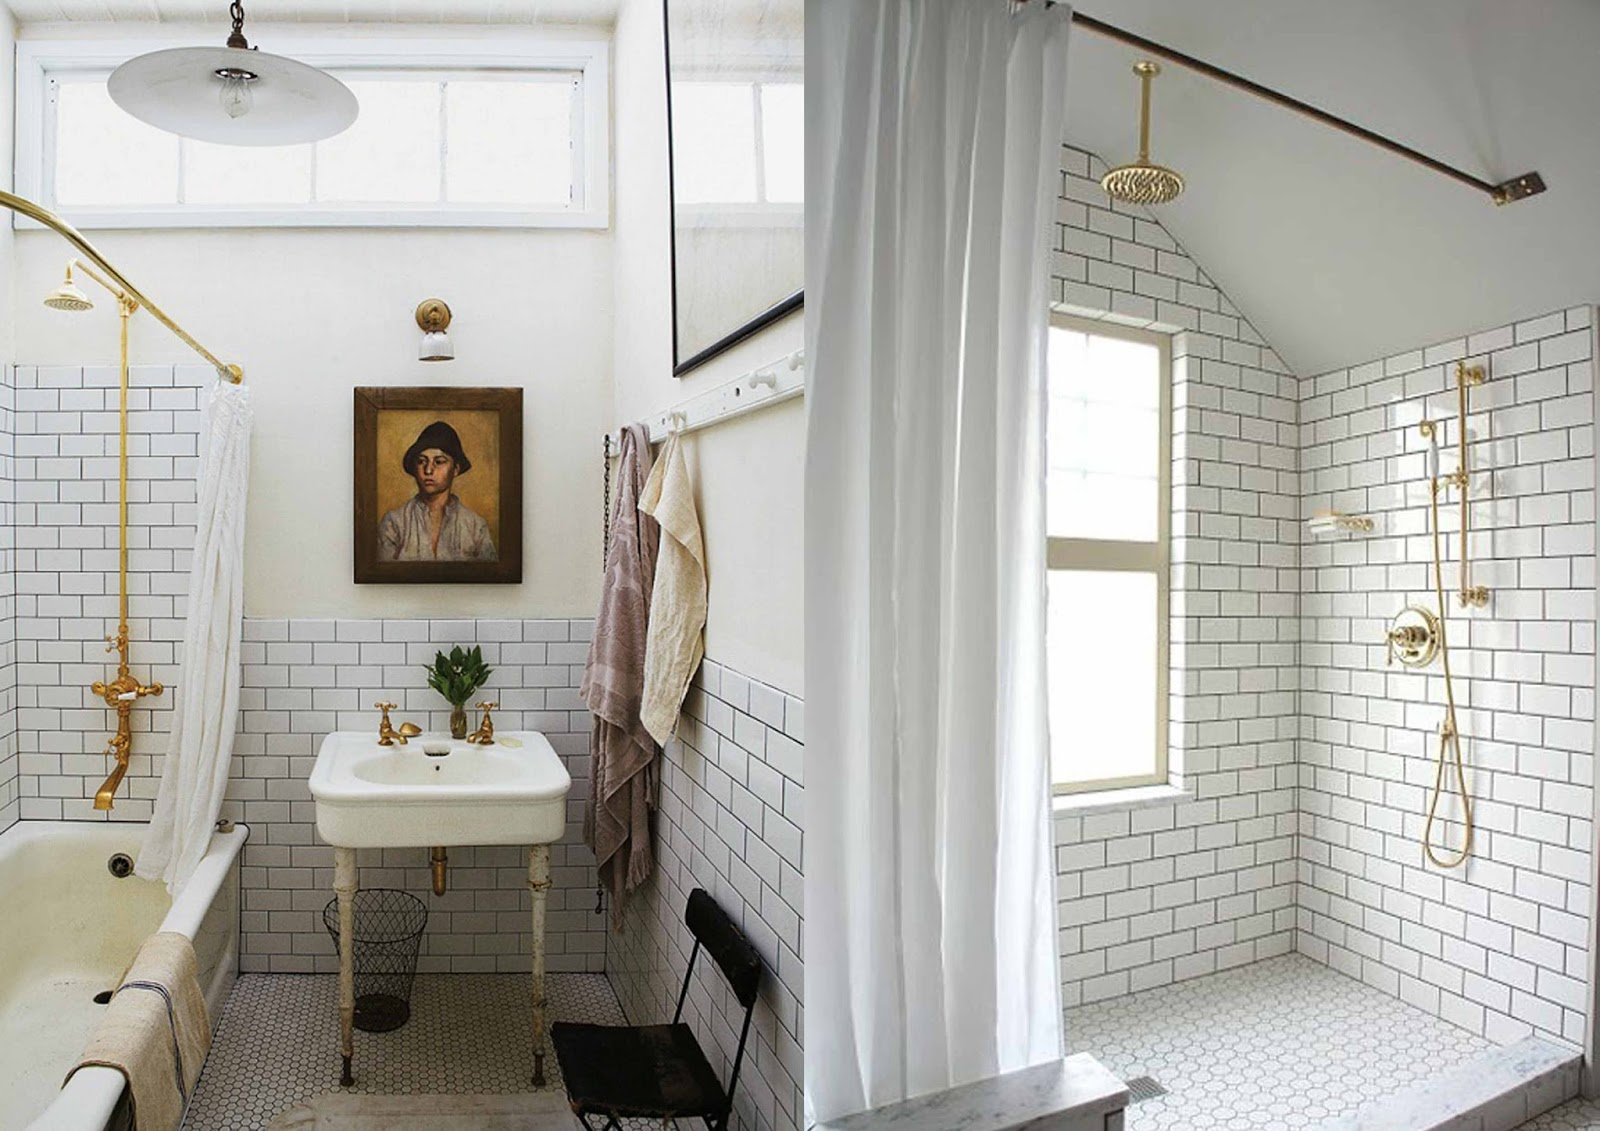 traditional shower designs 2 person buckets spades men fashion design and lifestyle bathroom white tiles design inspiration home interiors across the